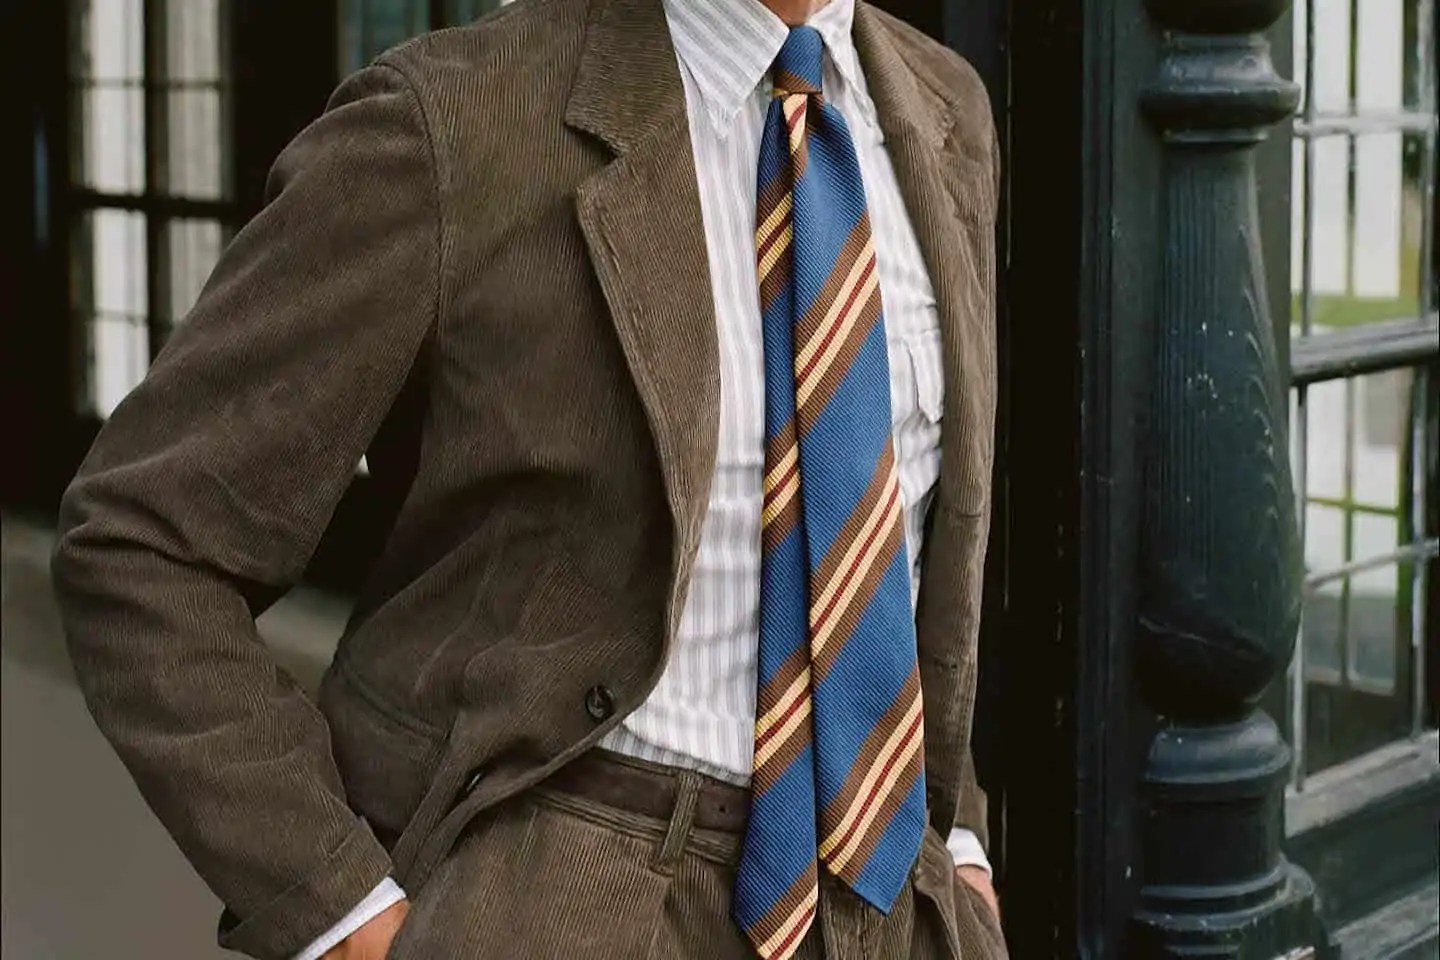 A man wearing a tweed suit